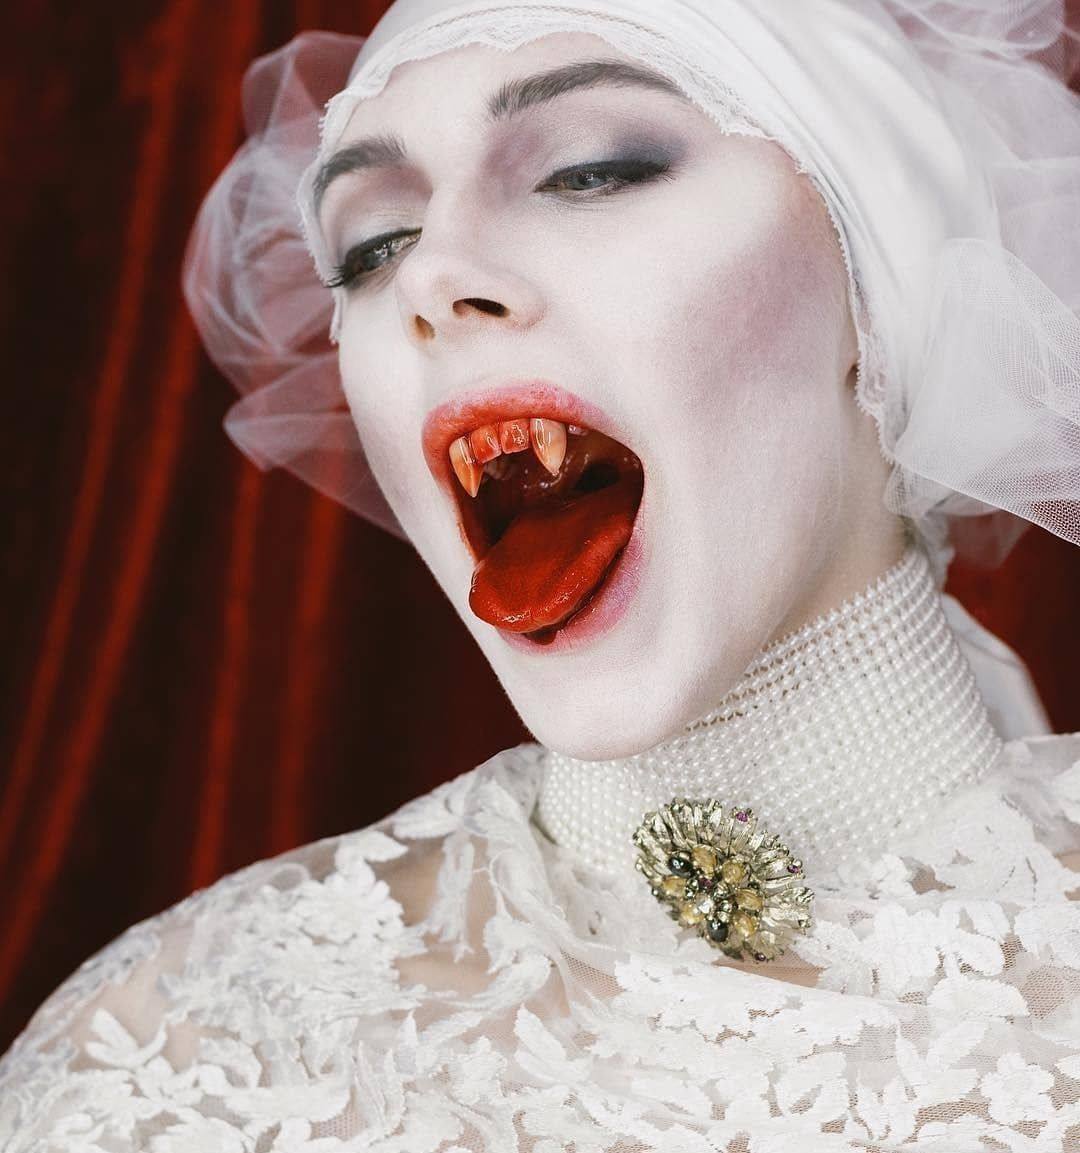 Pin By M C On Vampires In 2020 Movie Character Makeup Horror Movies Dracula